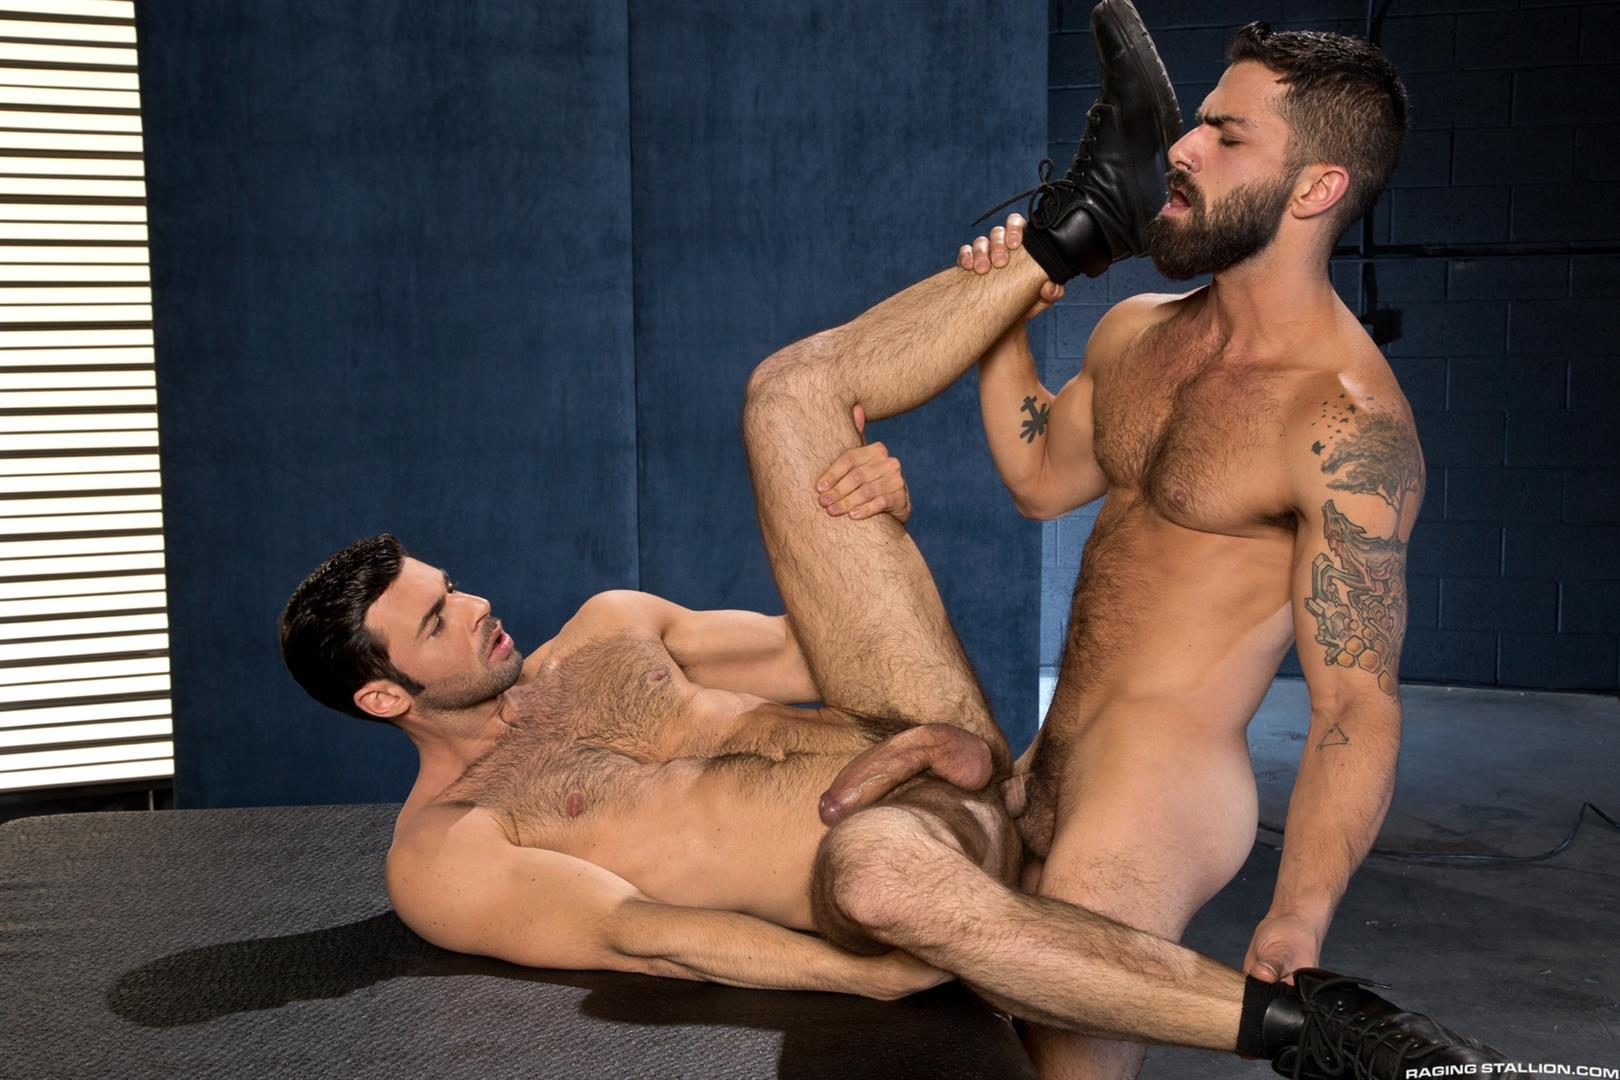 Raging-Stallion-Adam-Ramzi-and-Dario-Beck-Hairy-Ass-And-A-Big-Uncut-Cock-Amateur-Gay-Porn-14 Fucking A Hairy Ass Muscle Jock Ass With A Big Uncut Cock